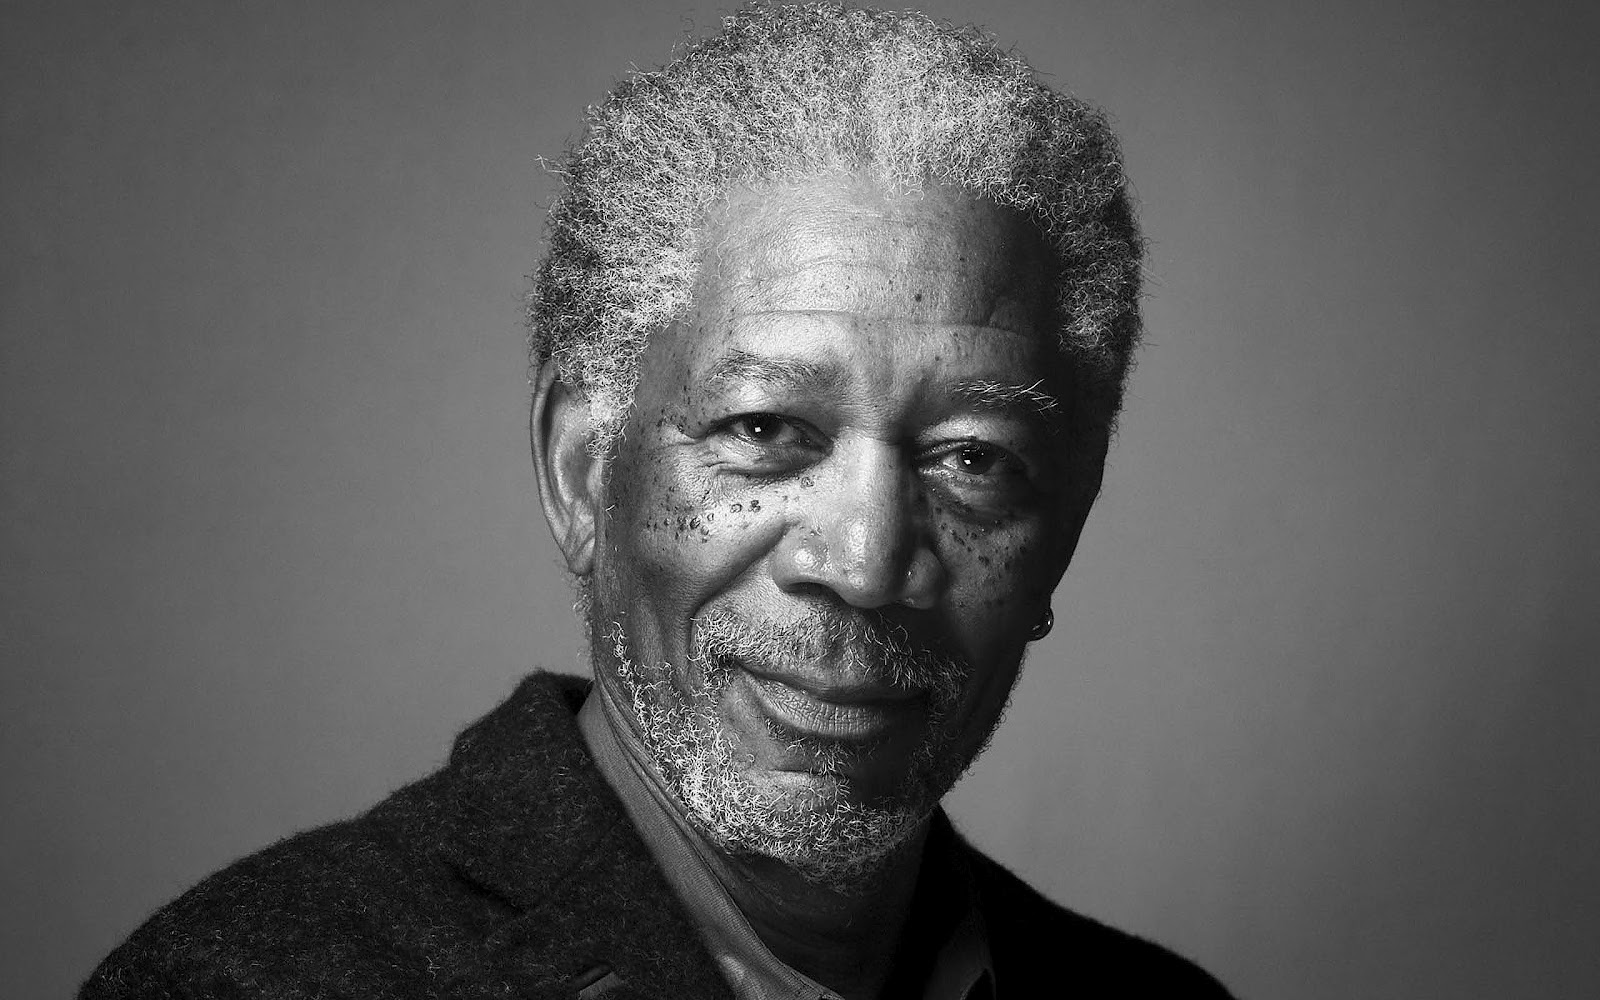 Morgan Freeman Speaks About His Fibromyalgia - Healing Fibro